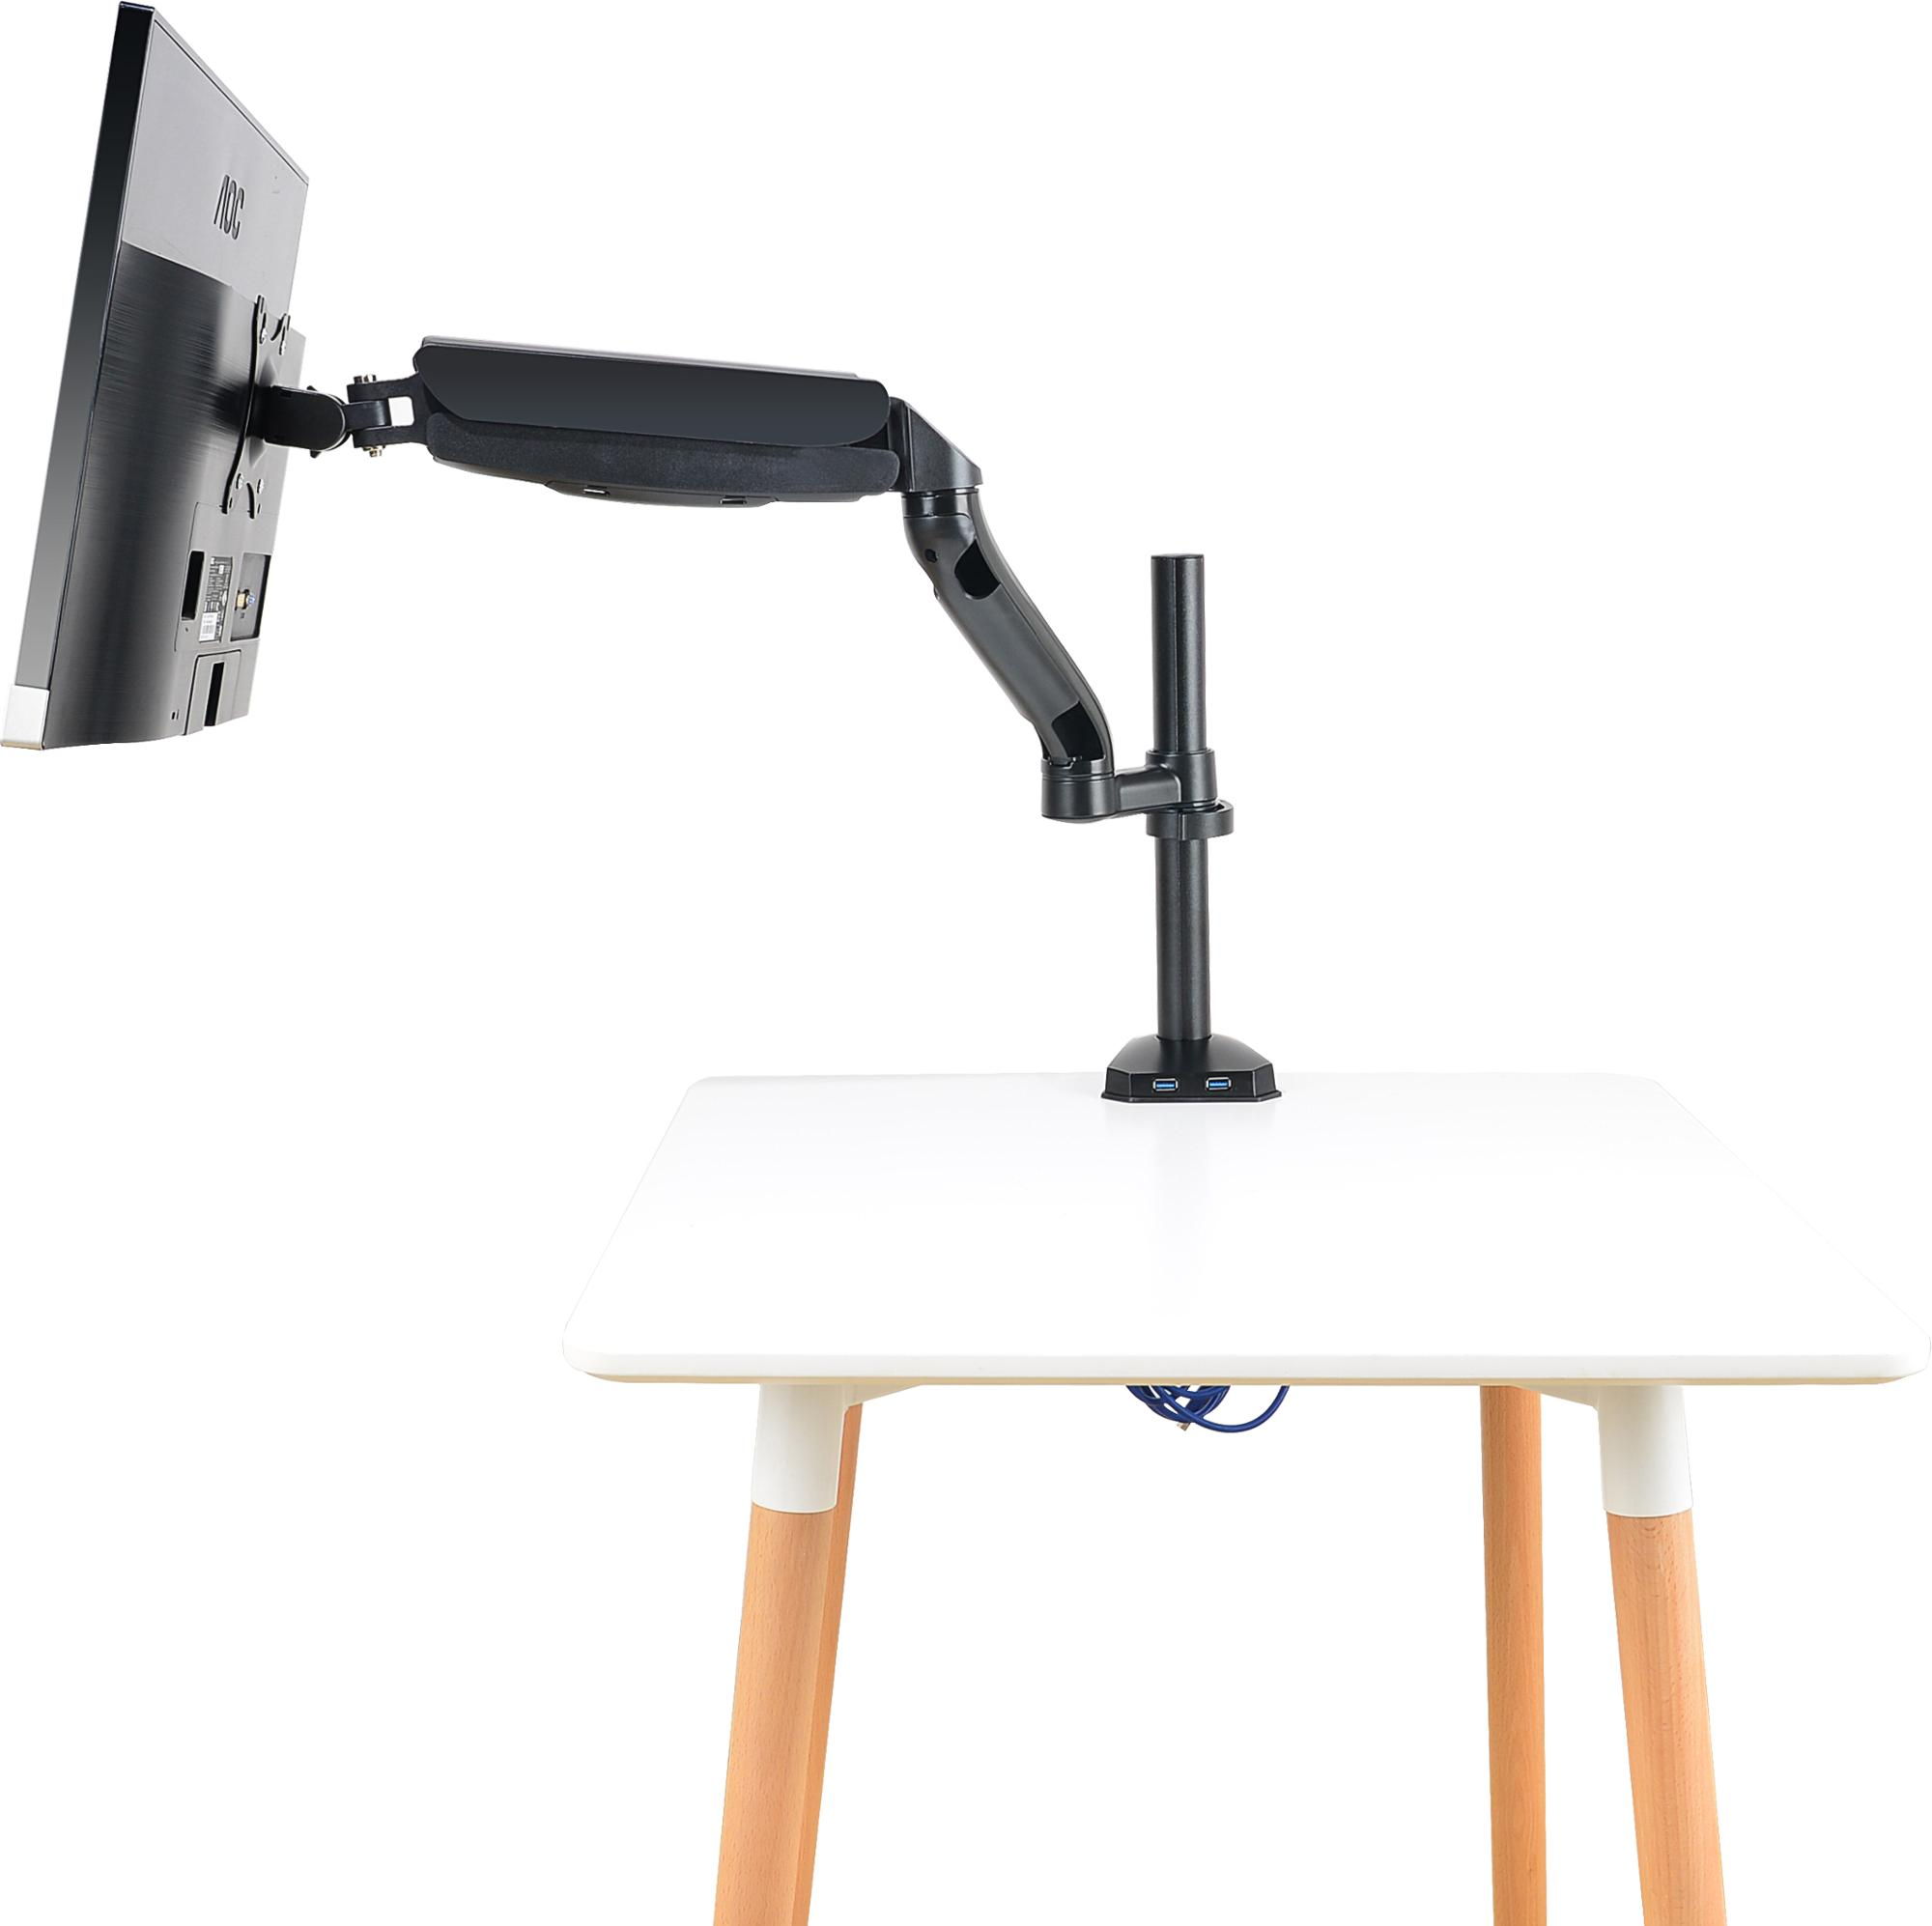 JLT Gas Sping Aluminum  360 Degrees  LCD Monitor Desk Mount Stand